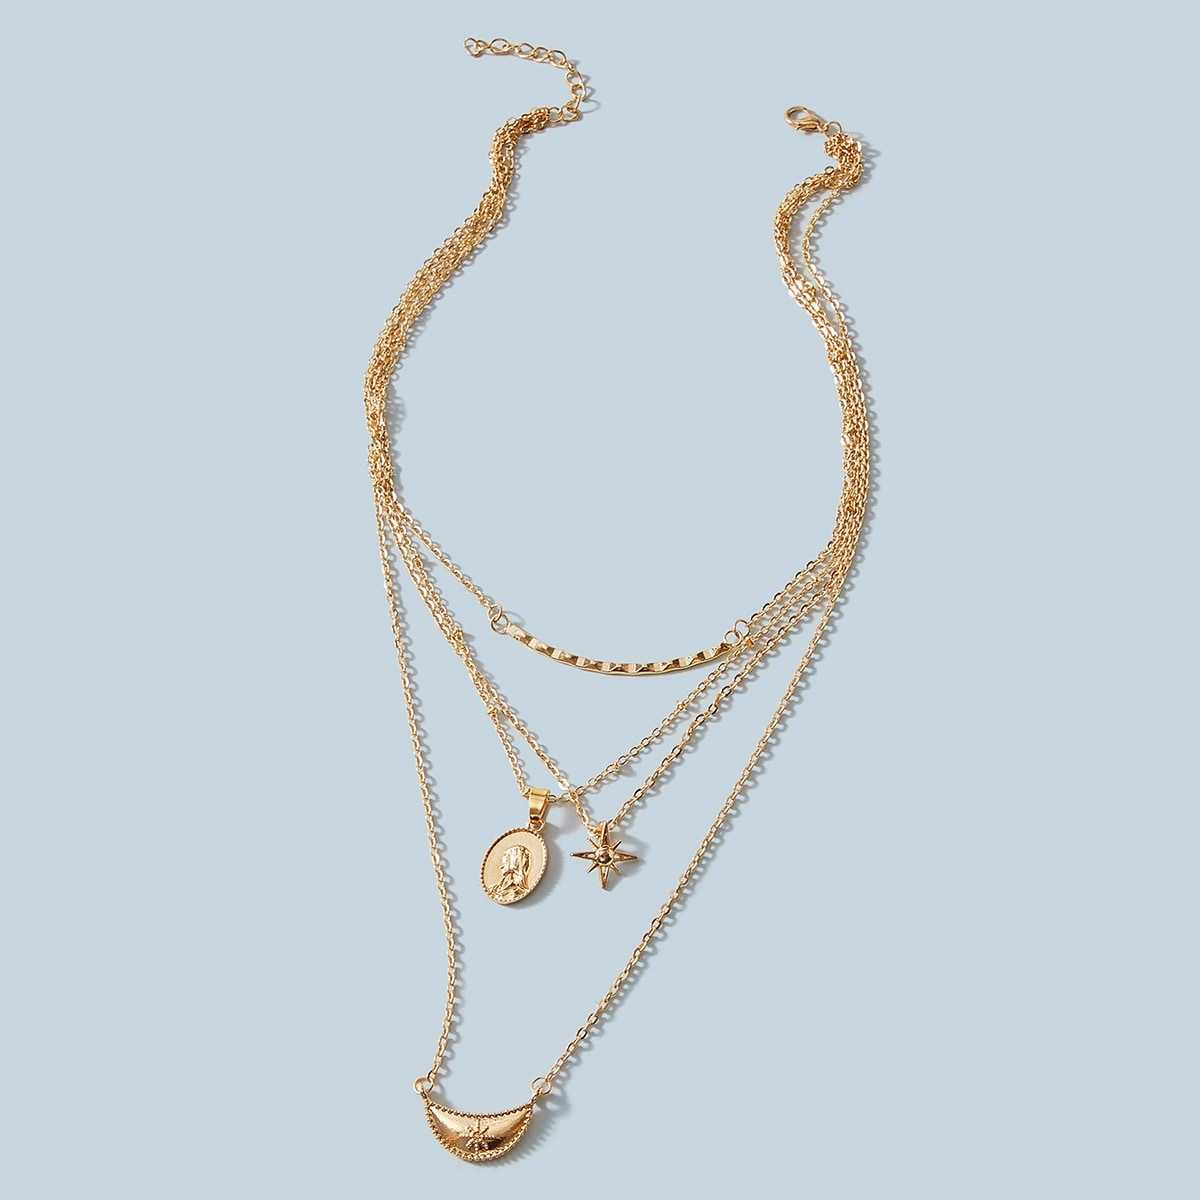 Coin & Star Charm Layered Necklace 1pc in Gold by ROMWE on GOOFASH